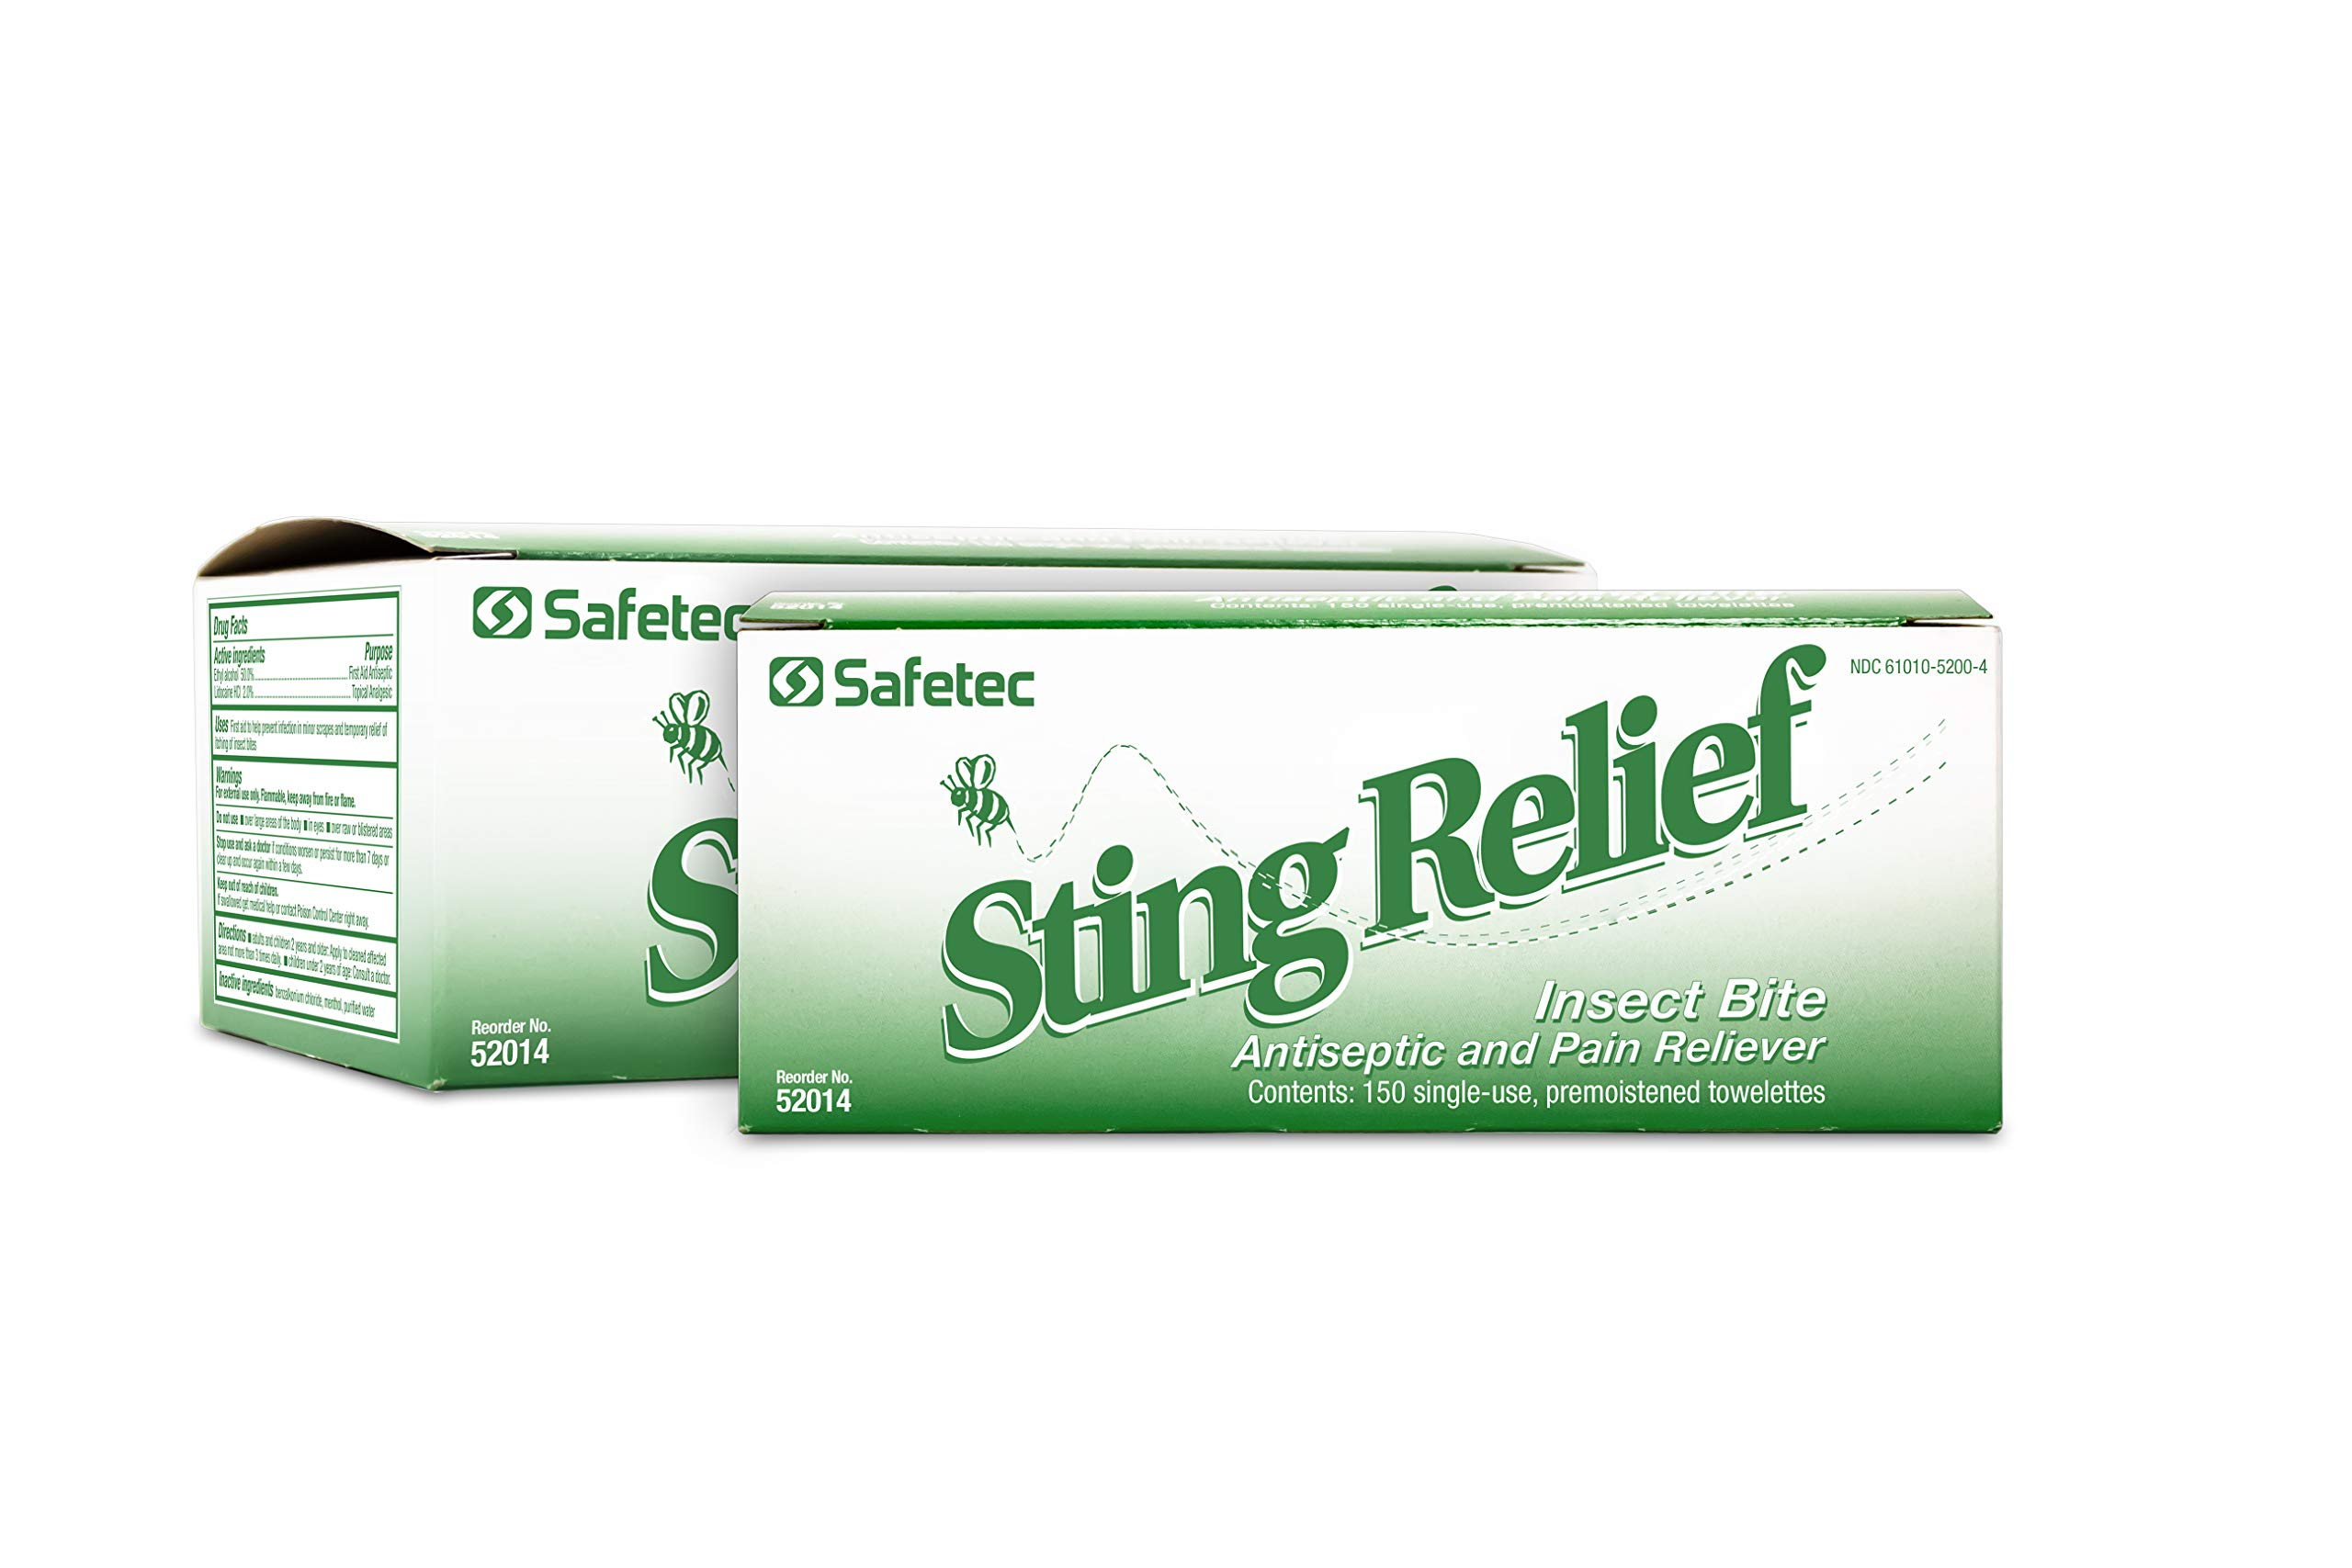 Safetec Sting Relief Wipes 150ct Box (2 Pack of 150ct Wipes - 300 Sting Wipes) for Insect Bites & Stings